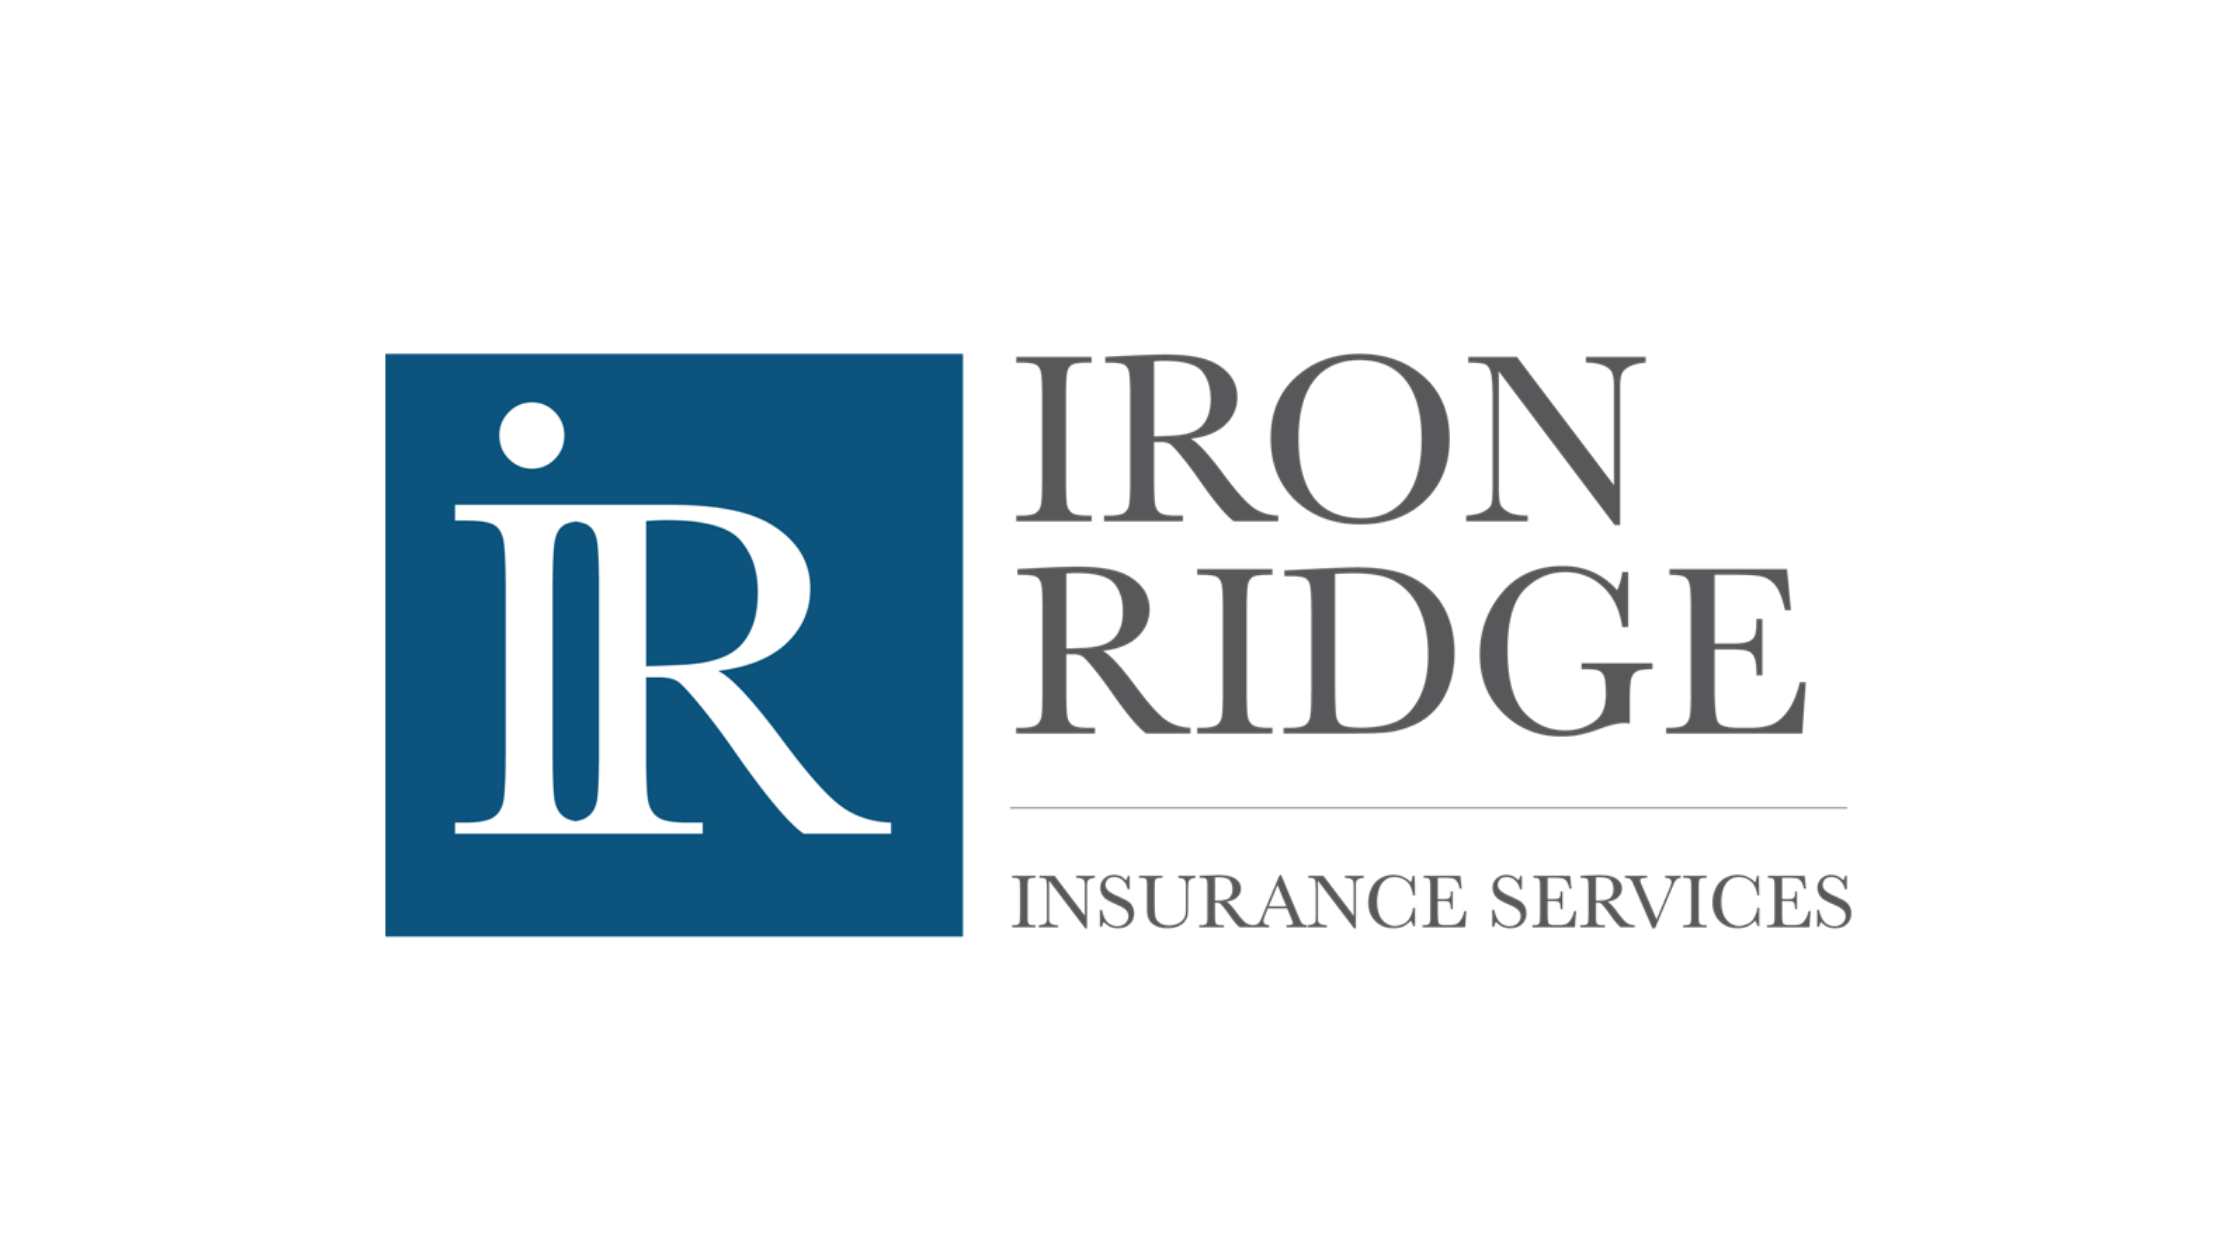 Ann Wall, CPCU, joins Iron Ridge Insurance Services